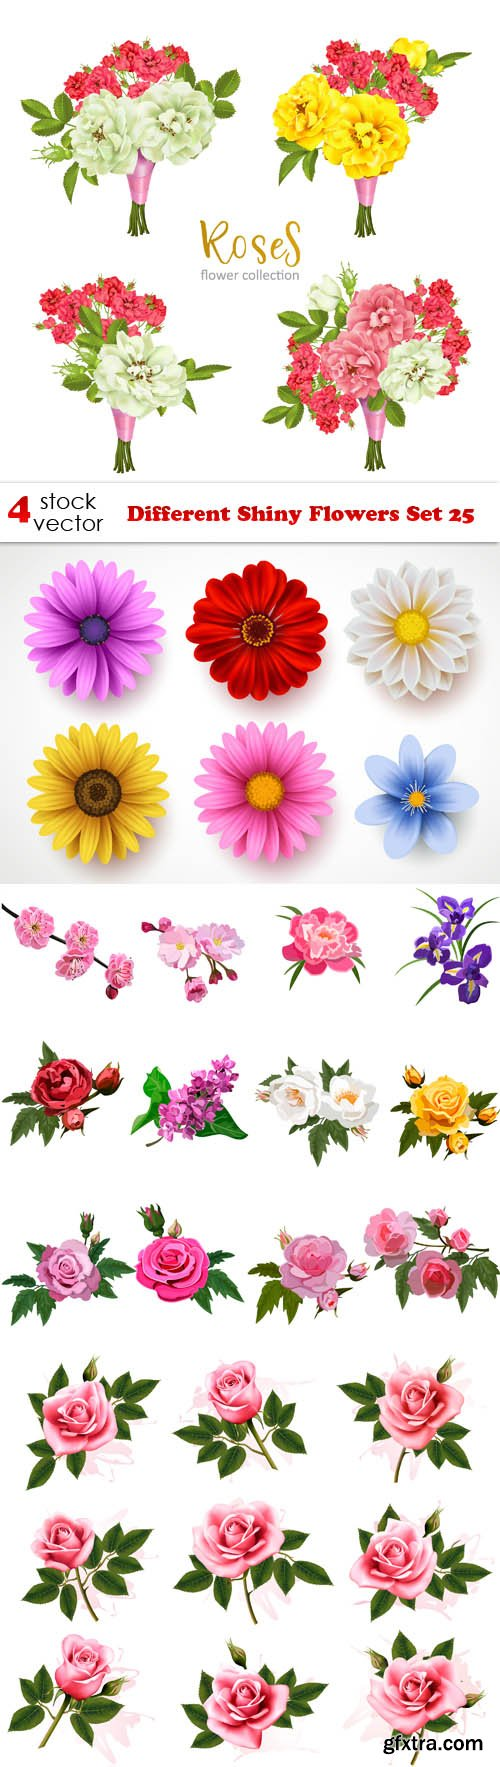 Vectors - Different Shiny Flowers Set 25